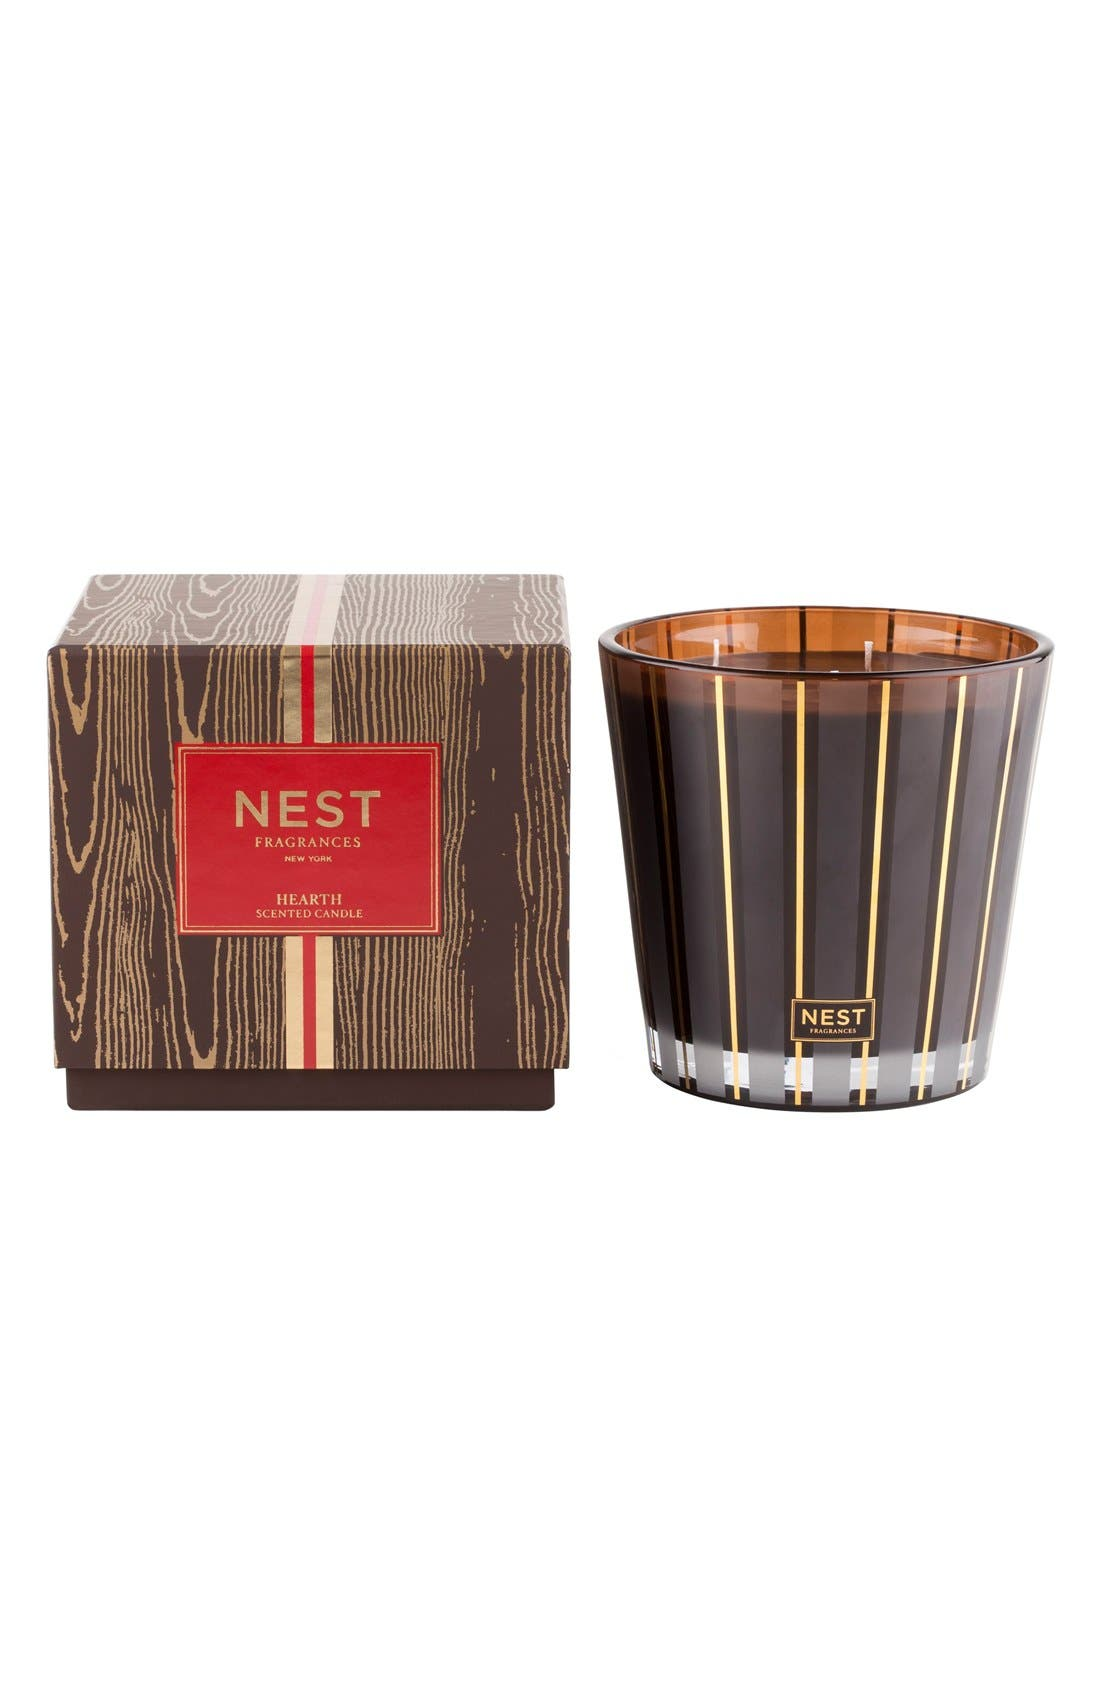 NEST Fragrances 'Hearth' Scented Three-Wick Candle